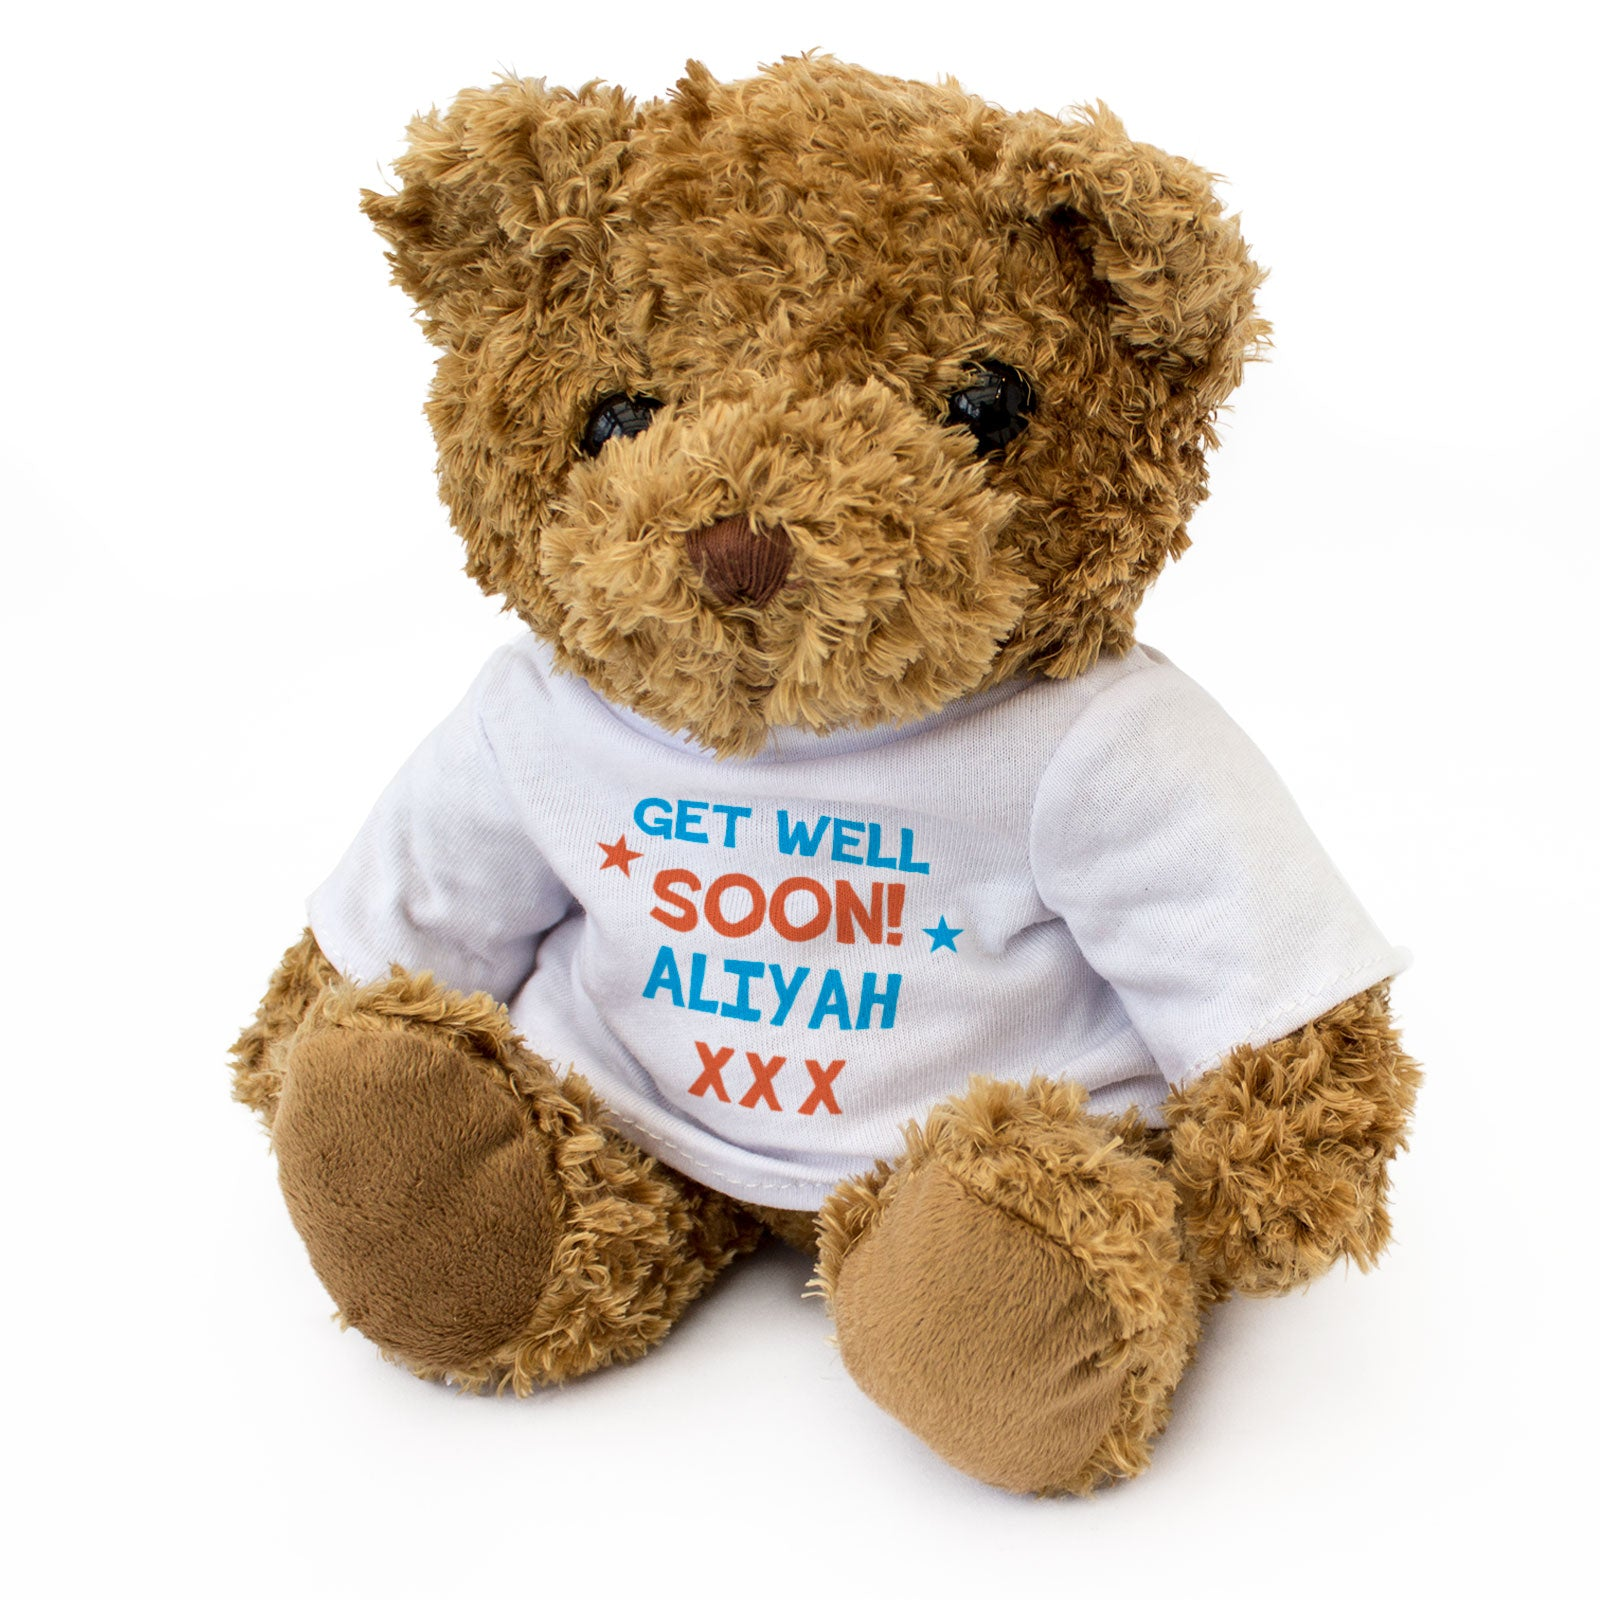 Get Well Soon Aliyah - Teddy Bear